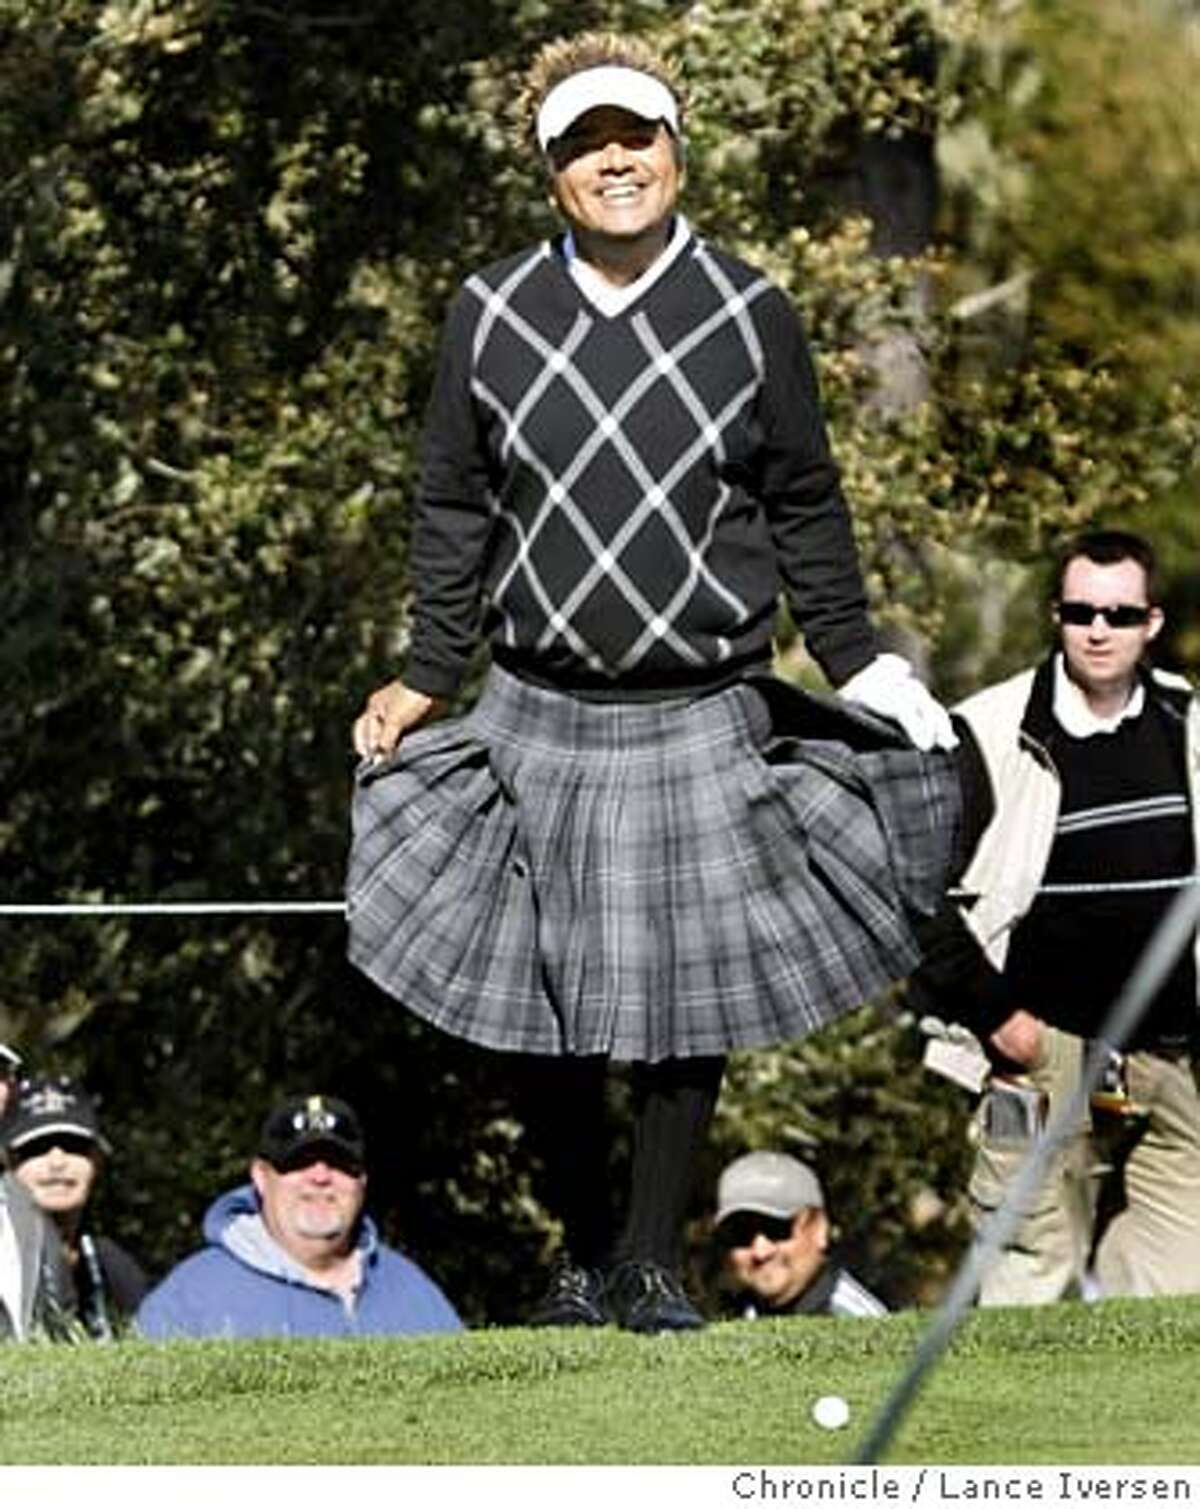 Actor/Comedian George Lopez sporting a kilt does a curtsy on the 14th green at Spy Glass Hill after blasting out of the trap much to the delight of the galley. The second round of the annual AT&T Pebble Beach National Pro-Am got under way with a number of new names leading the tournament. By Lance Iversen/The Chronicle 2nd round of the annual AT&T Pebble Beach National Pro-Am. By Lance Iversen/The Chronicle MANDATORY CREDIT PHOTOG AND SAN FRANCISCO CHRONICLE/NO SALES MAGS OUT